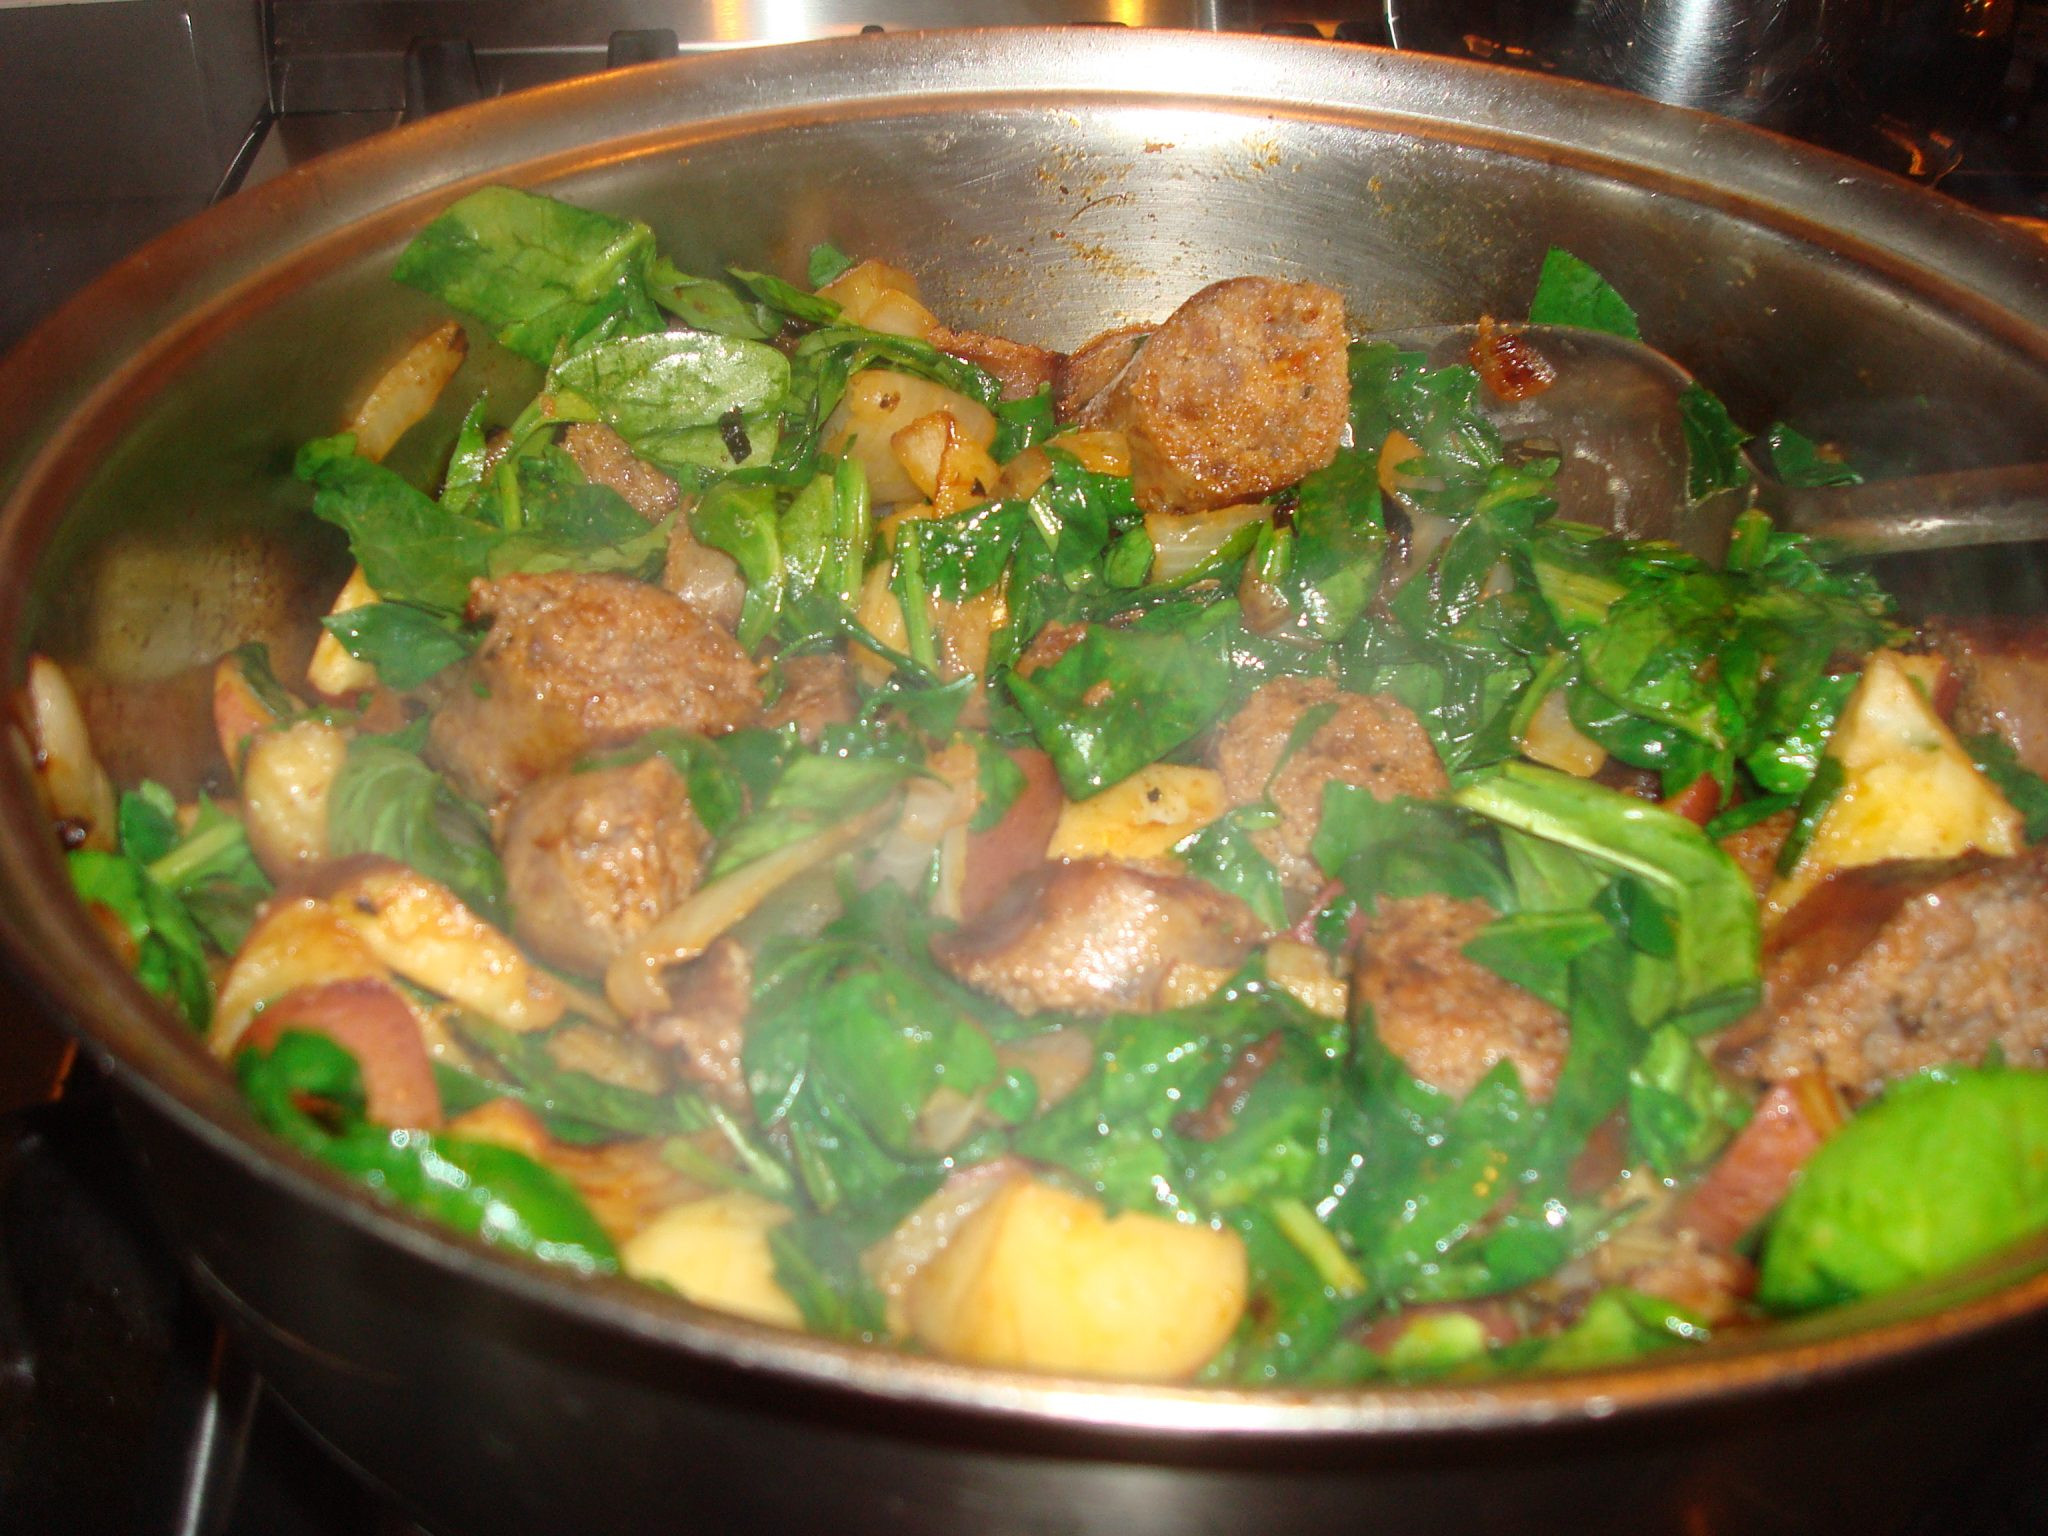 Italian Sausage Recipes  Quick and Easy Sweet Italian Sausage Recipe Midlife Road